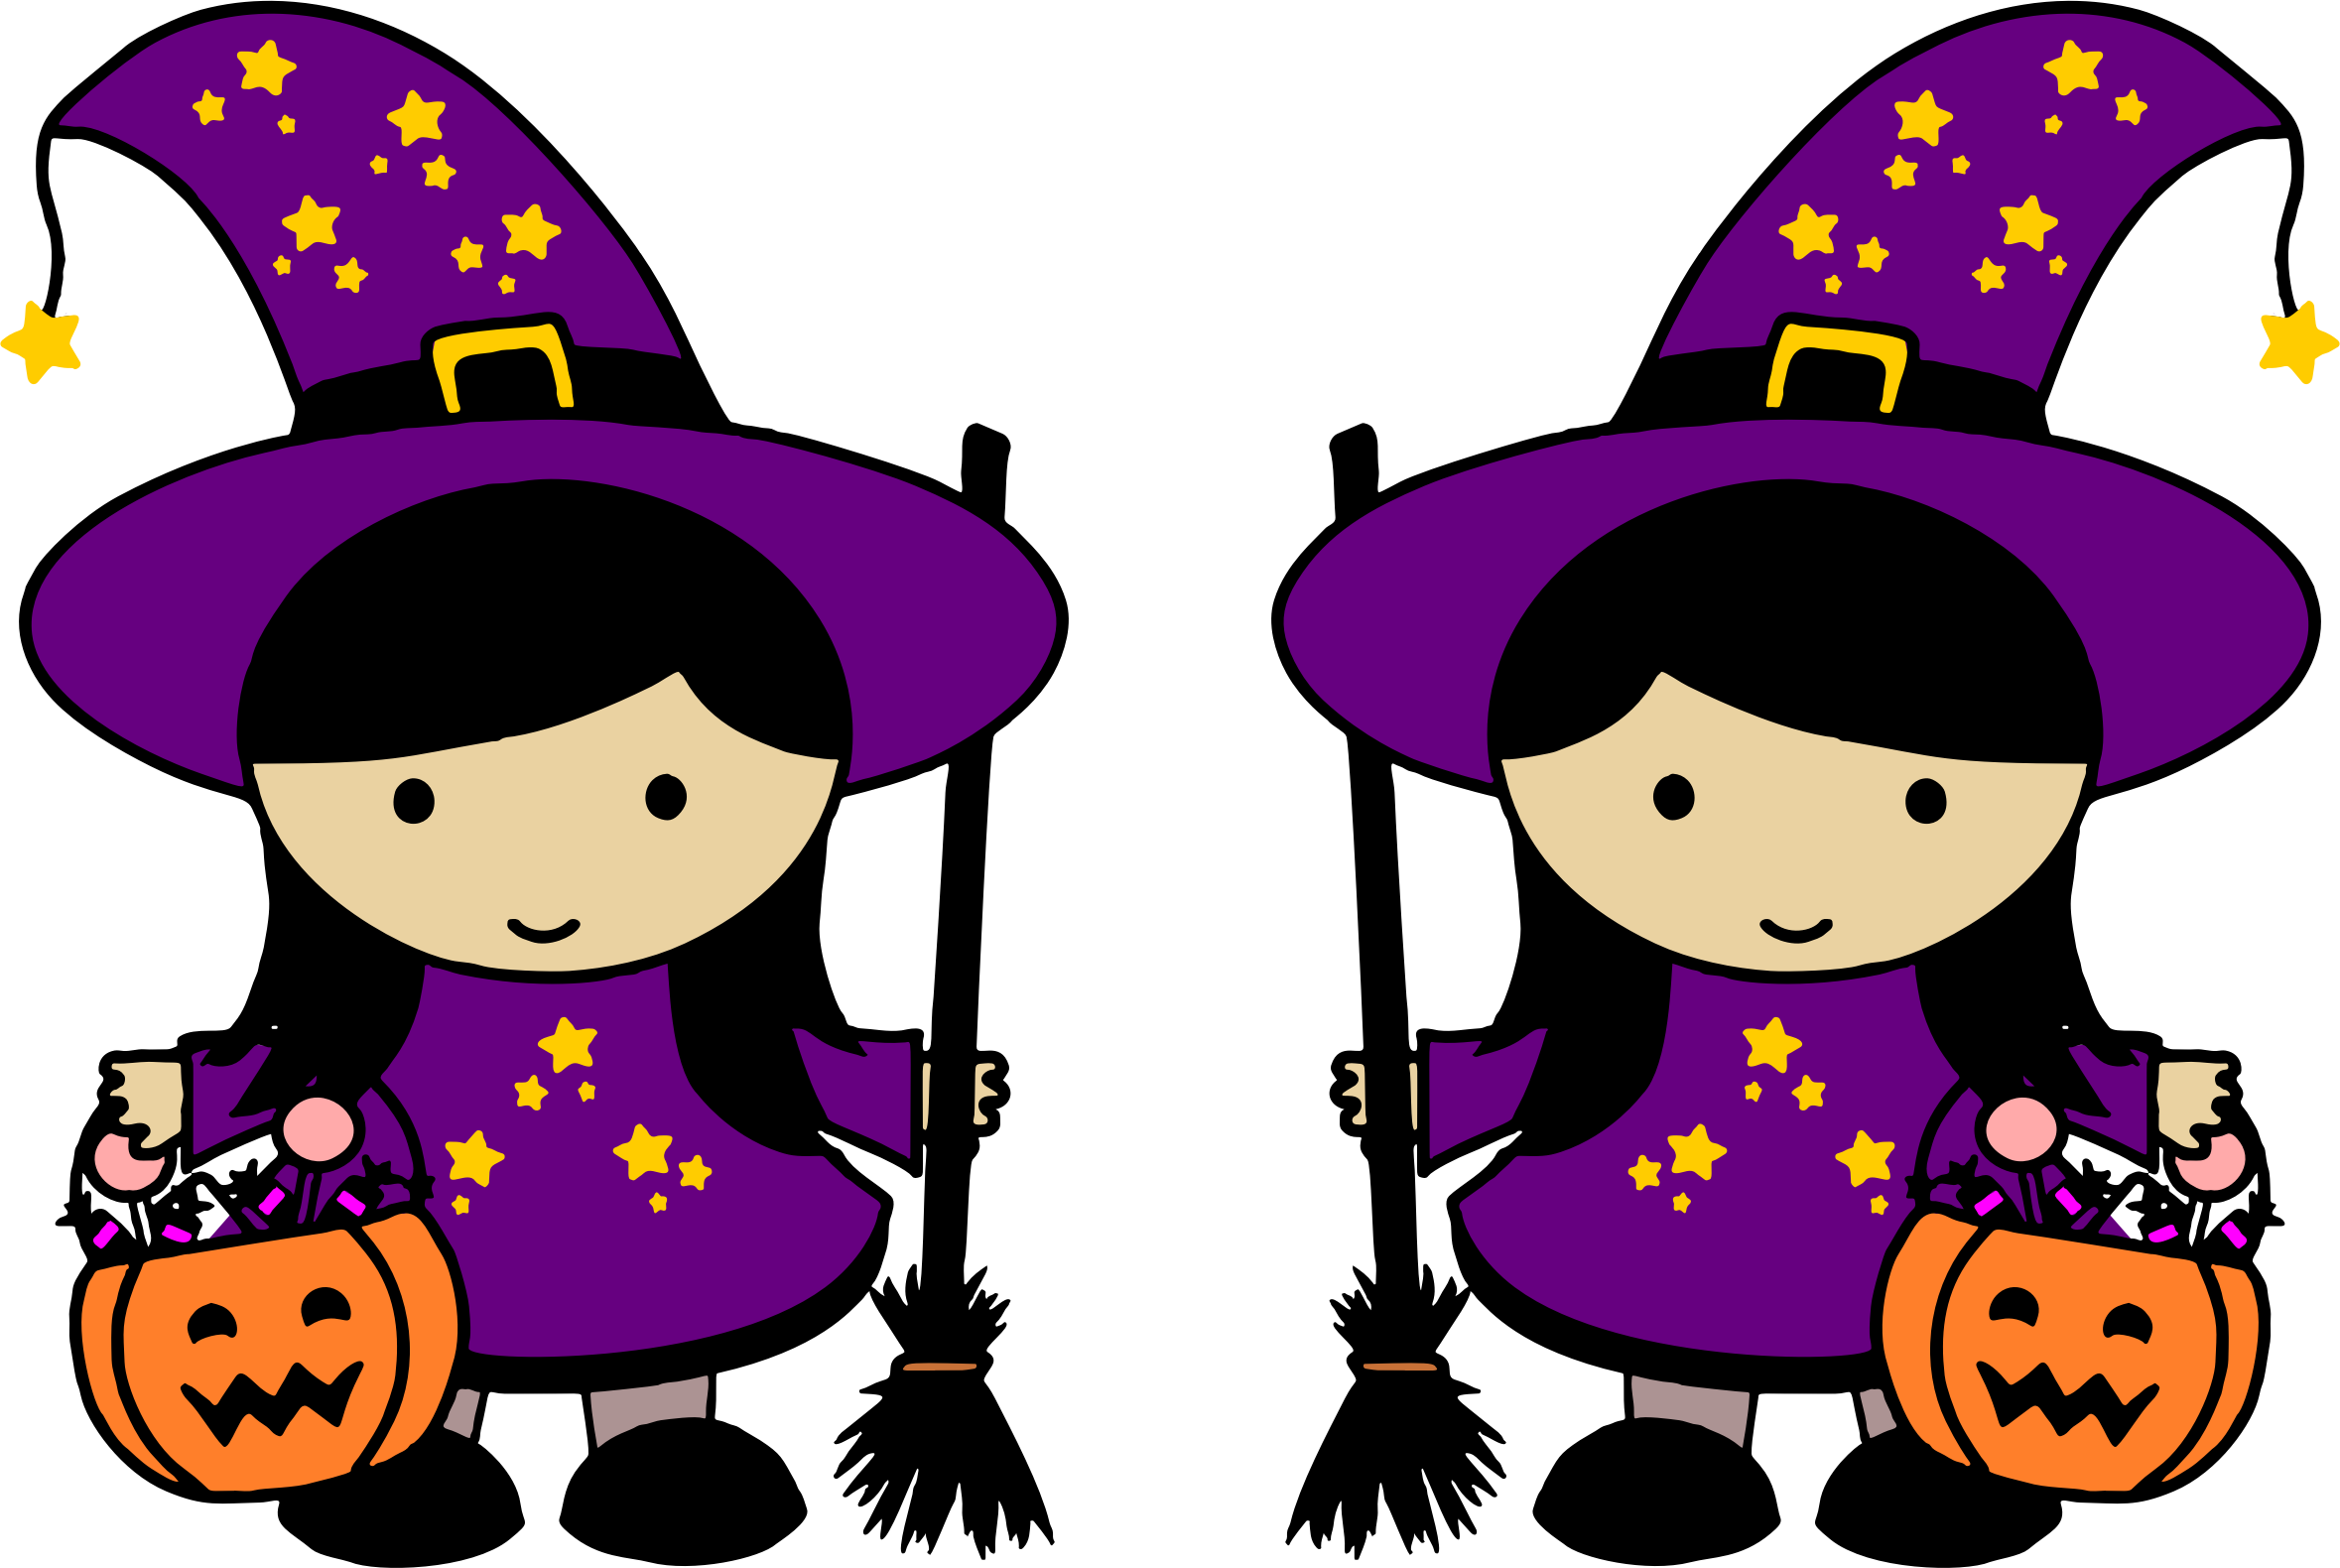 Twin Halloween Witches by JayNick